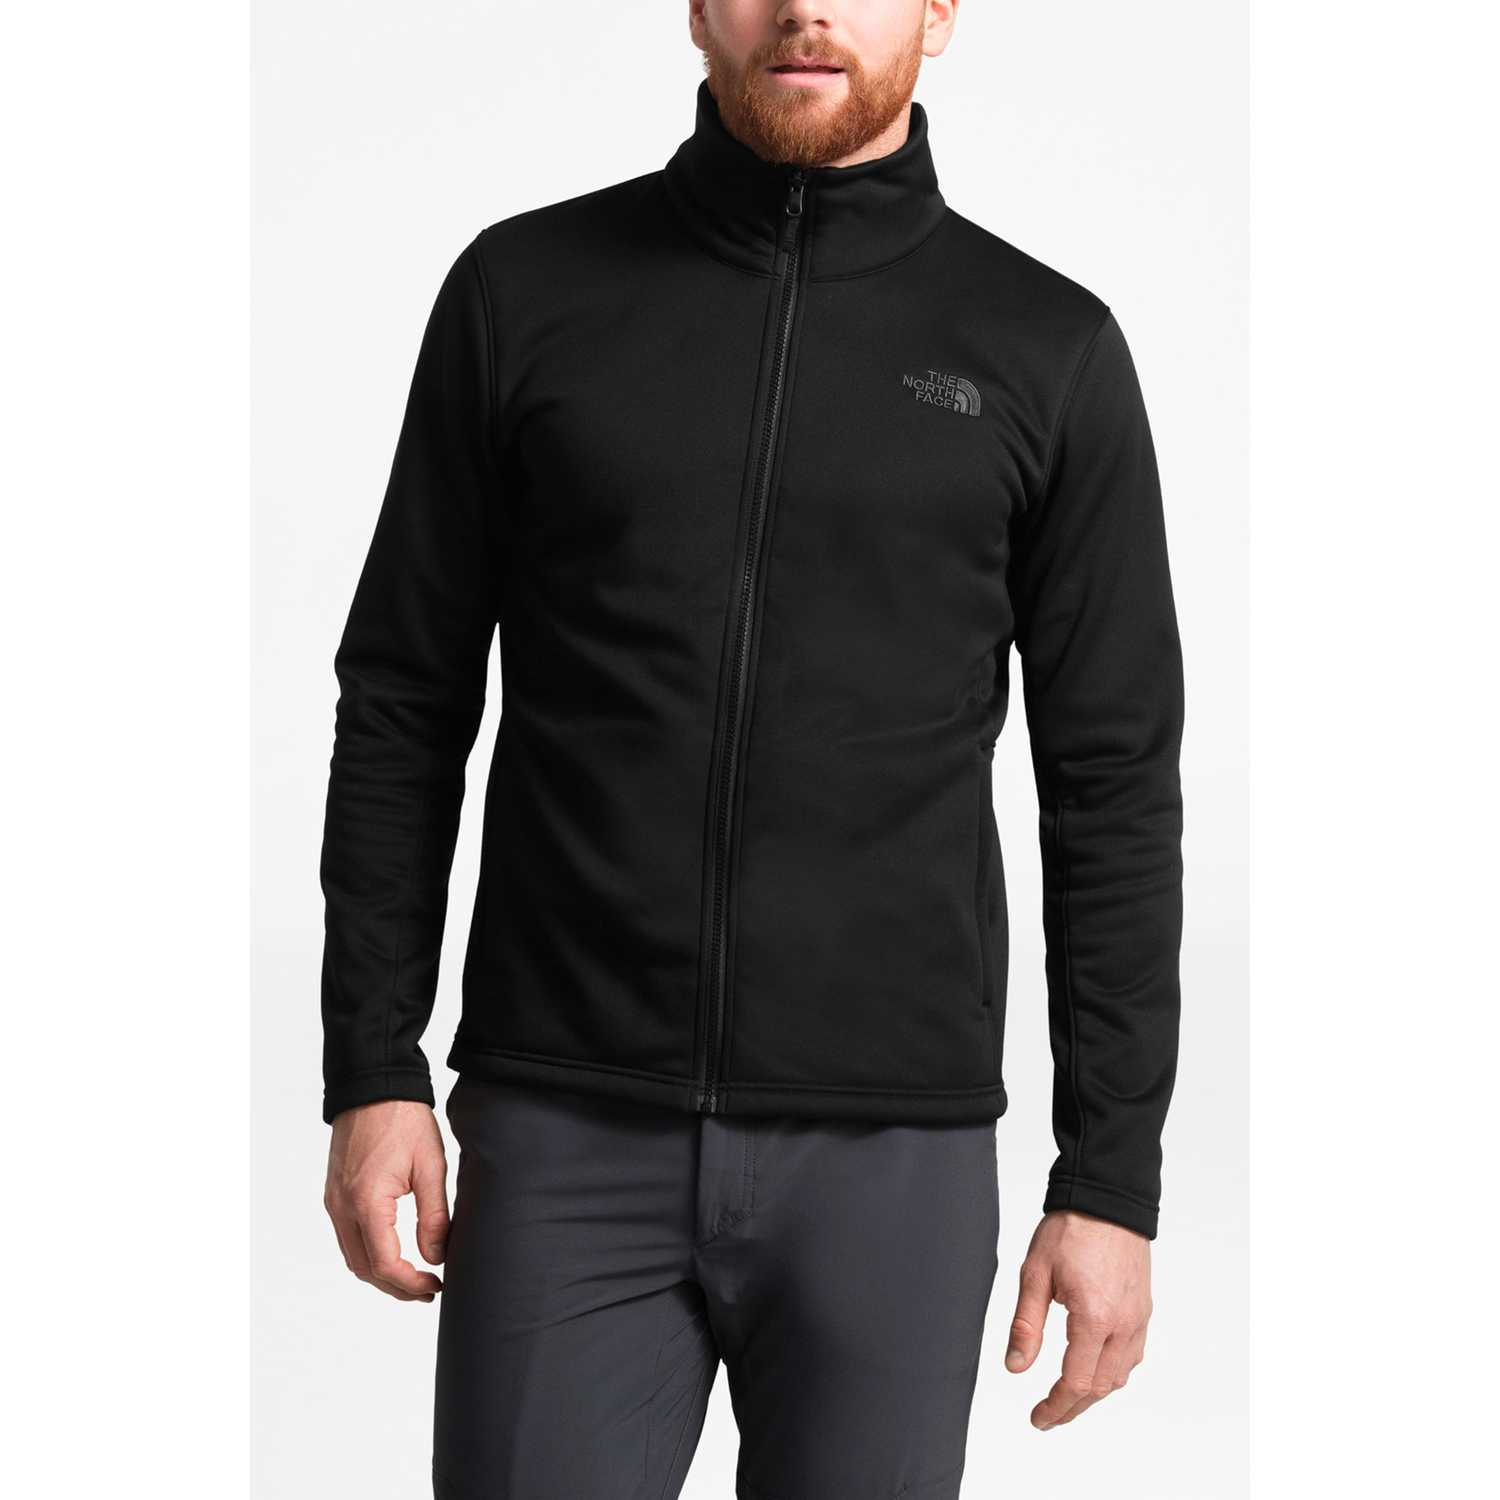 Casaca de Hombre The North Face Negro m arrowood triclimate jacket